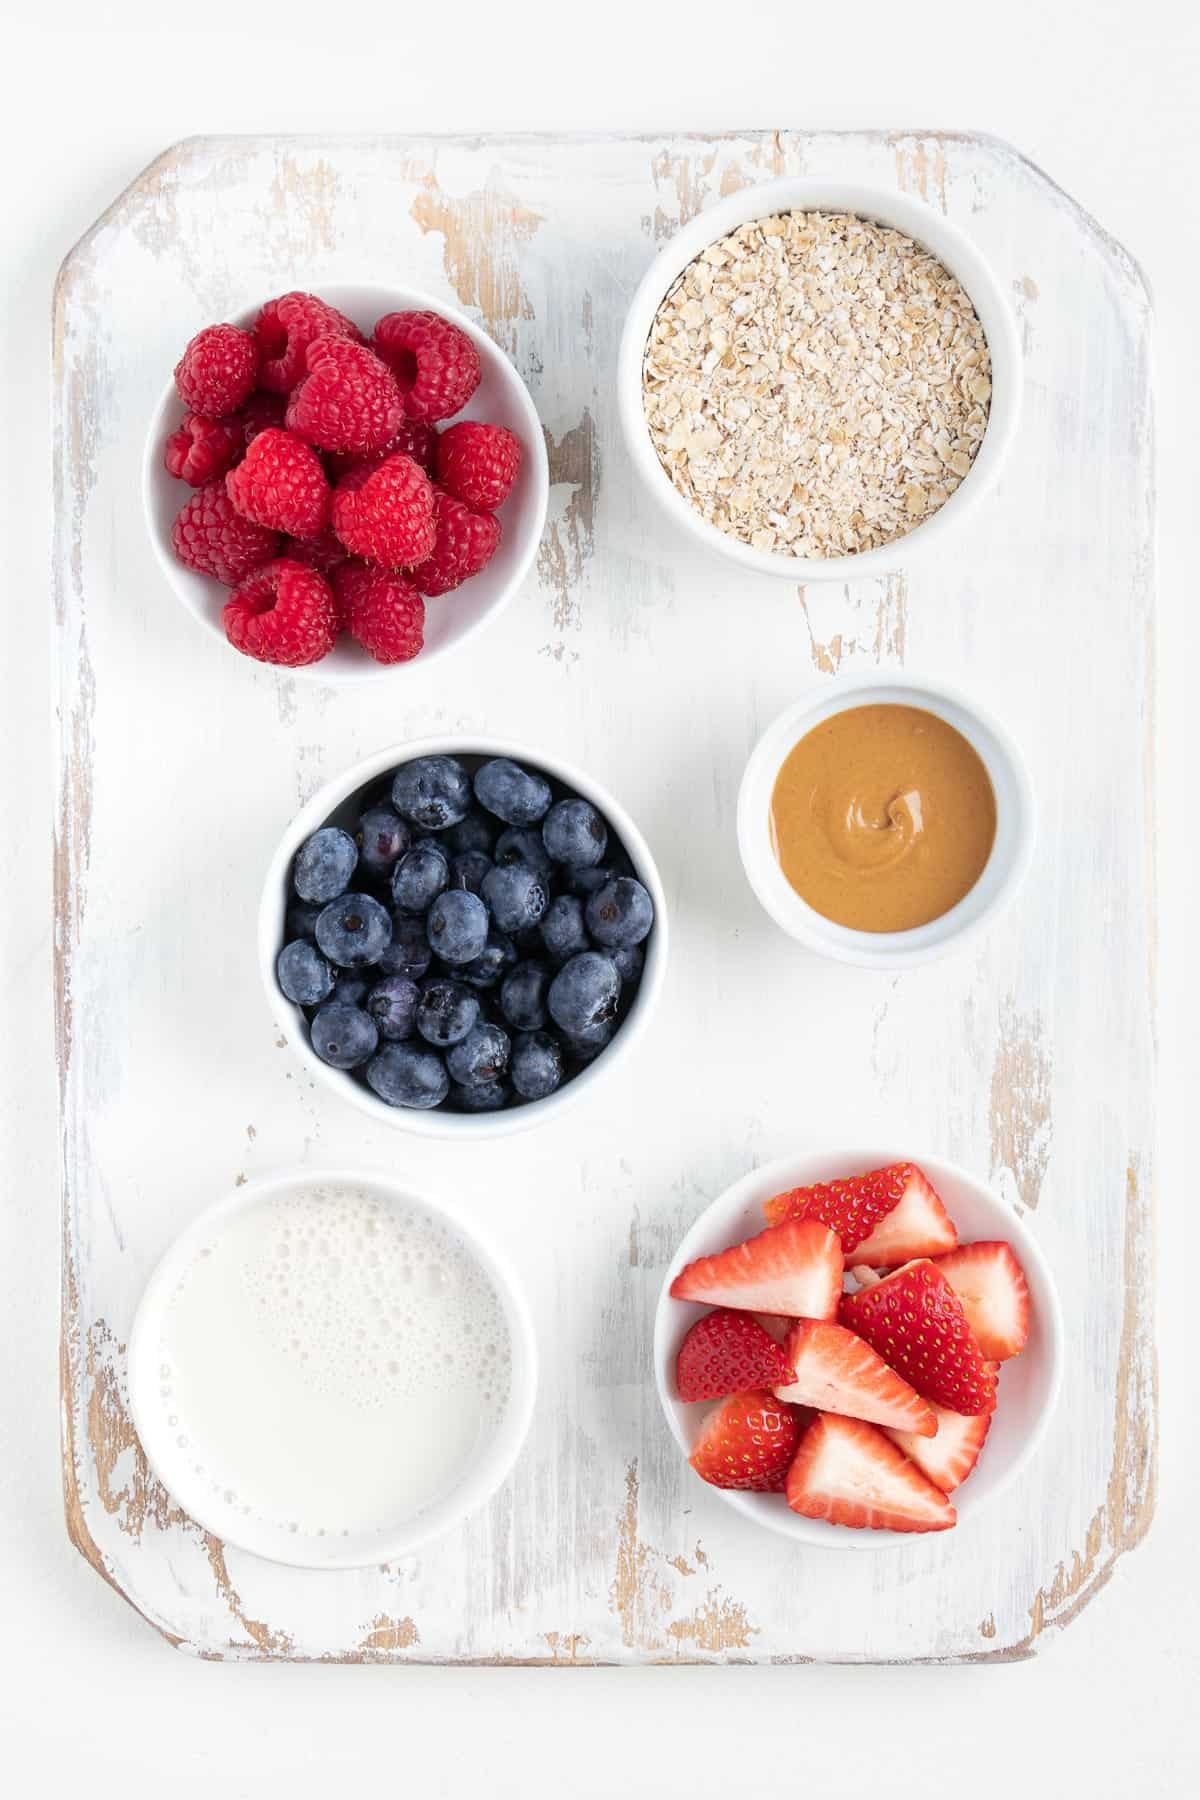 small bowls of raspberries, blueberries, strawberries, milk, oats, and peanut butter